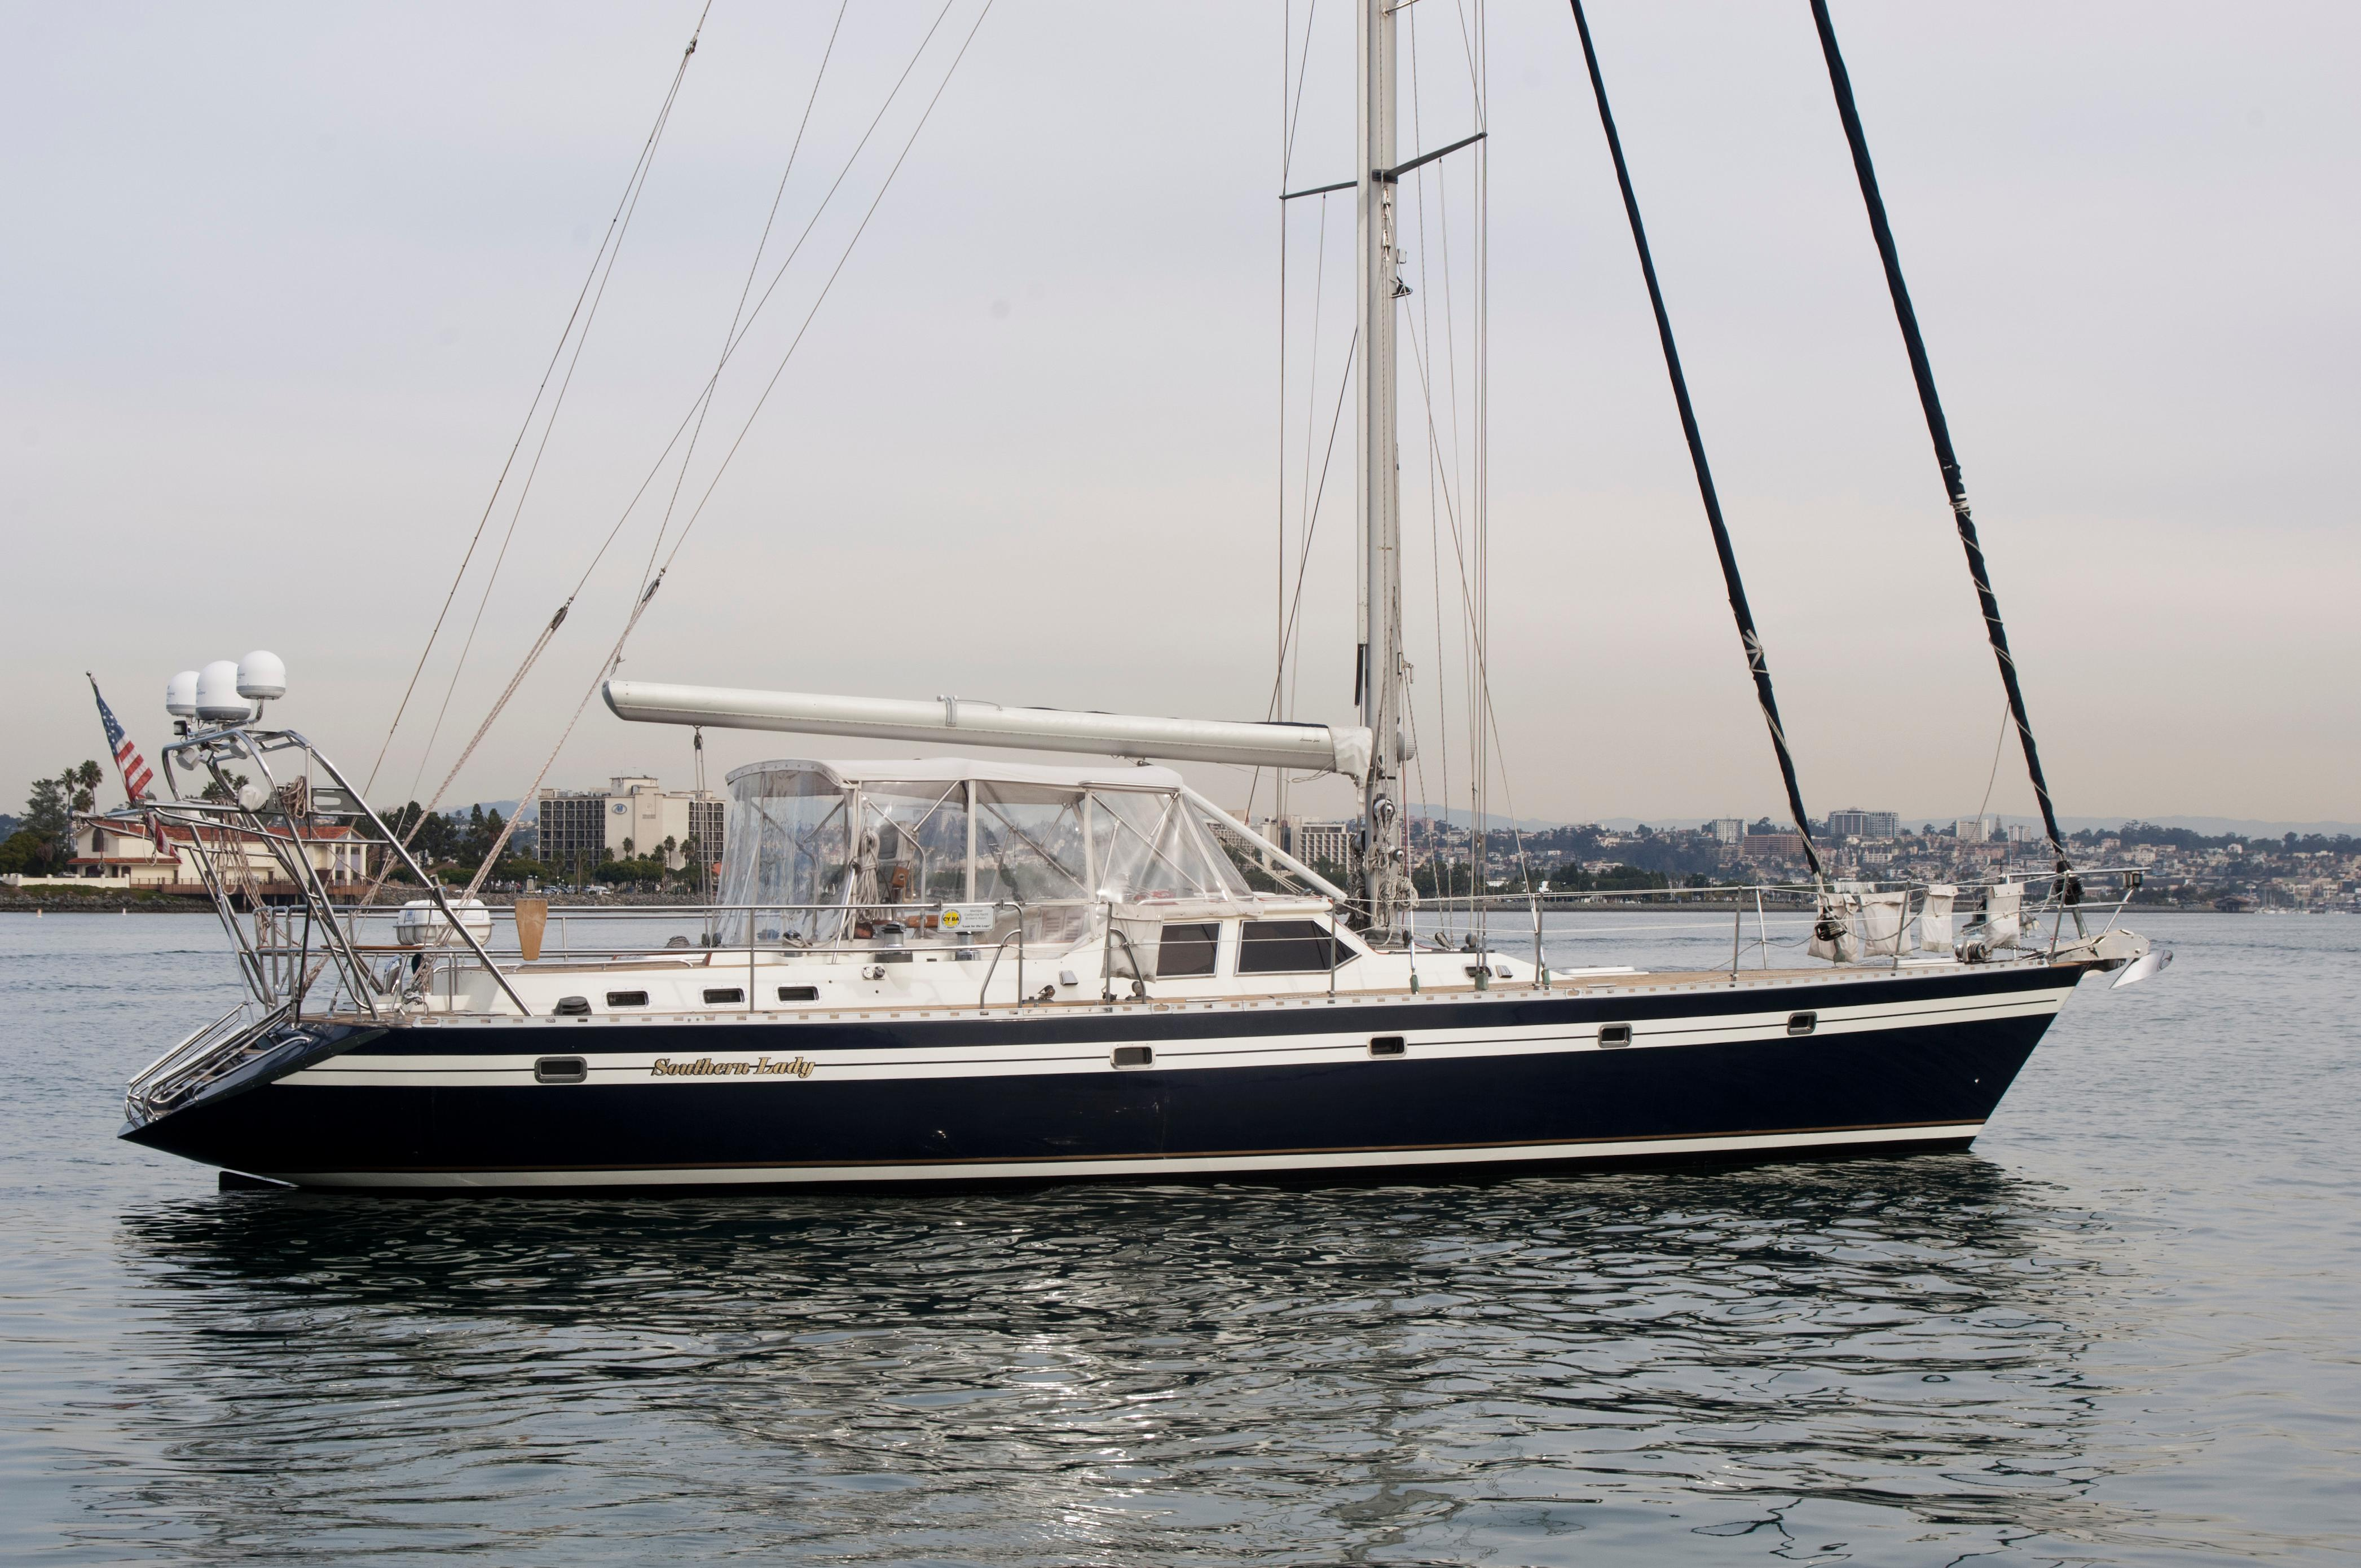 5629086_20160204102457349_1_XLARGE&w=4186&h=2780&t=1454610538000 2006 tayana 58 sail boat for sale www yachtworld com  at soozxer.org